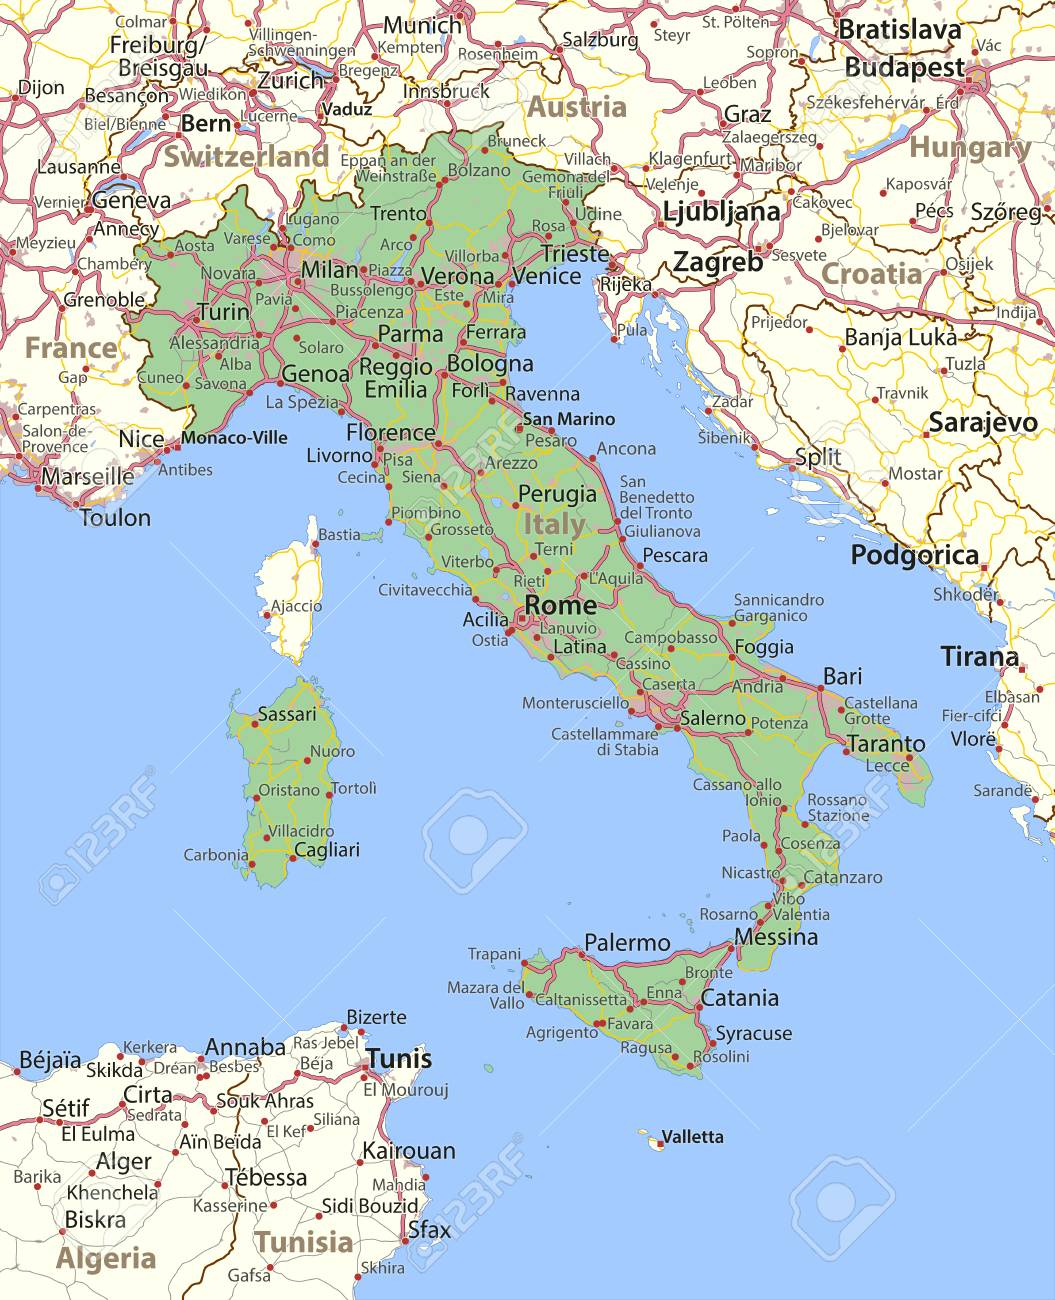 Map Of Italy In English.Map Of Italy Shows Country Borders Urban Areas Place Names